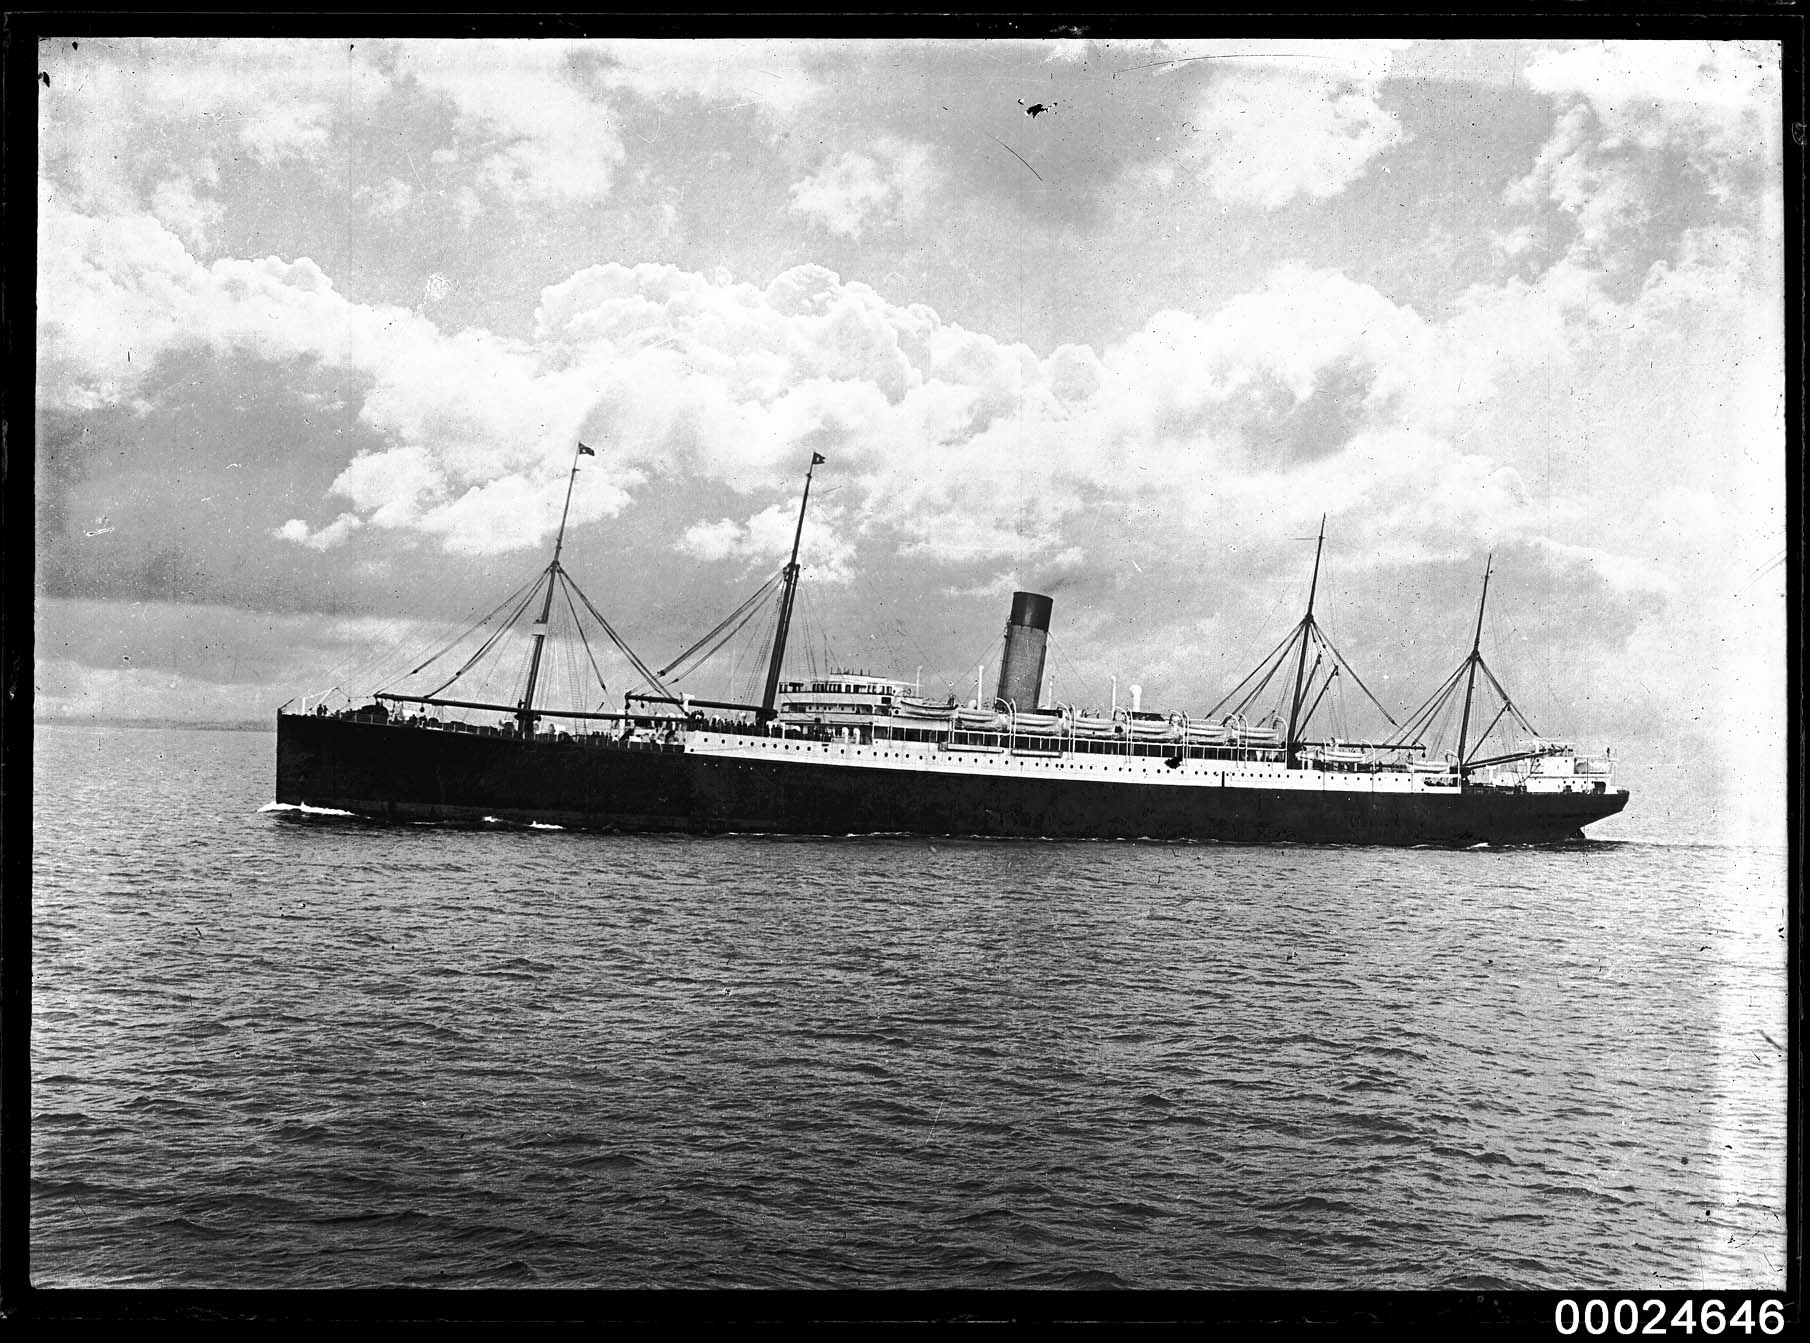 Starboard view of a White Star Line passenger steamship, probably SS CERAMIC, at sea